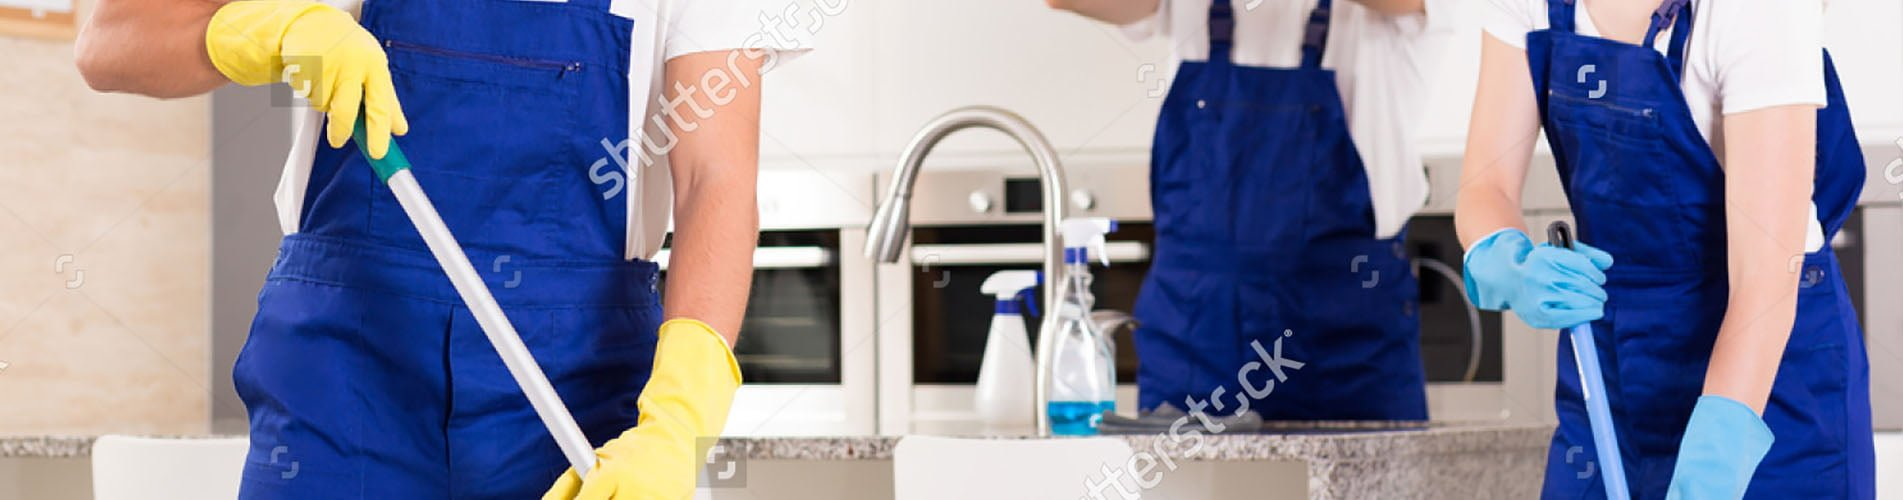 Student Multiple Occupancy Cleaning Services